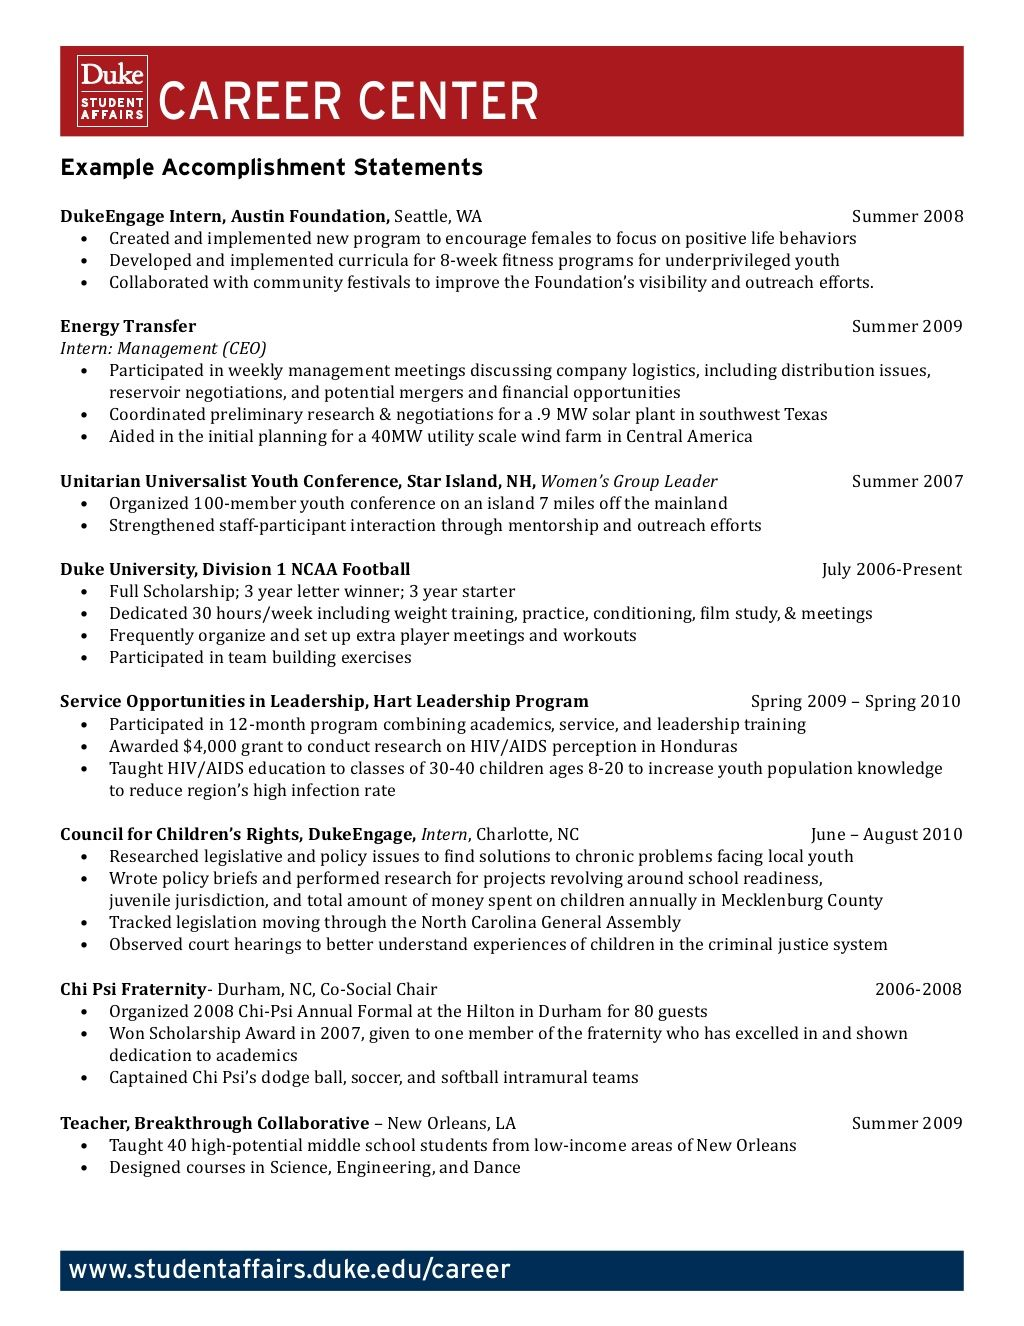 example accomplishment statements by duke university career center via slideshare